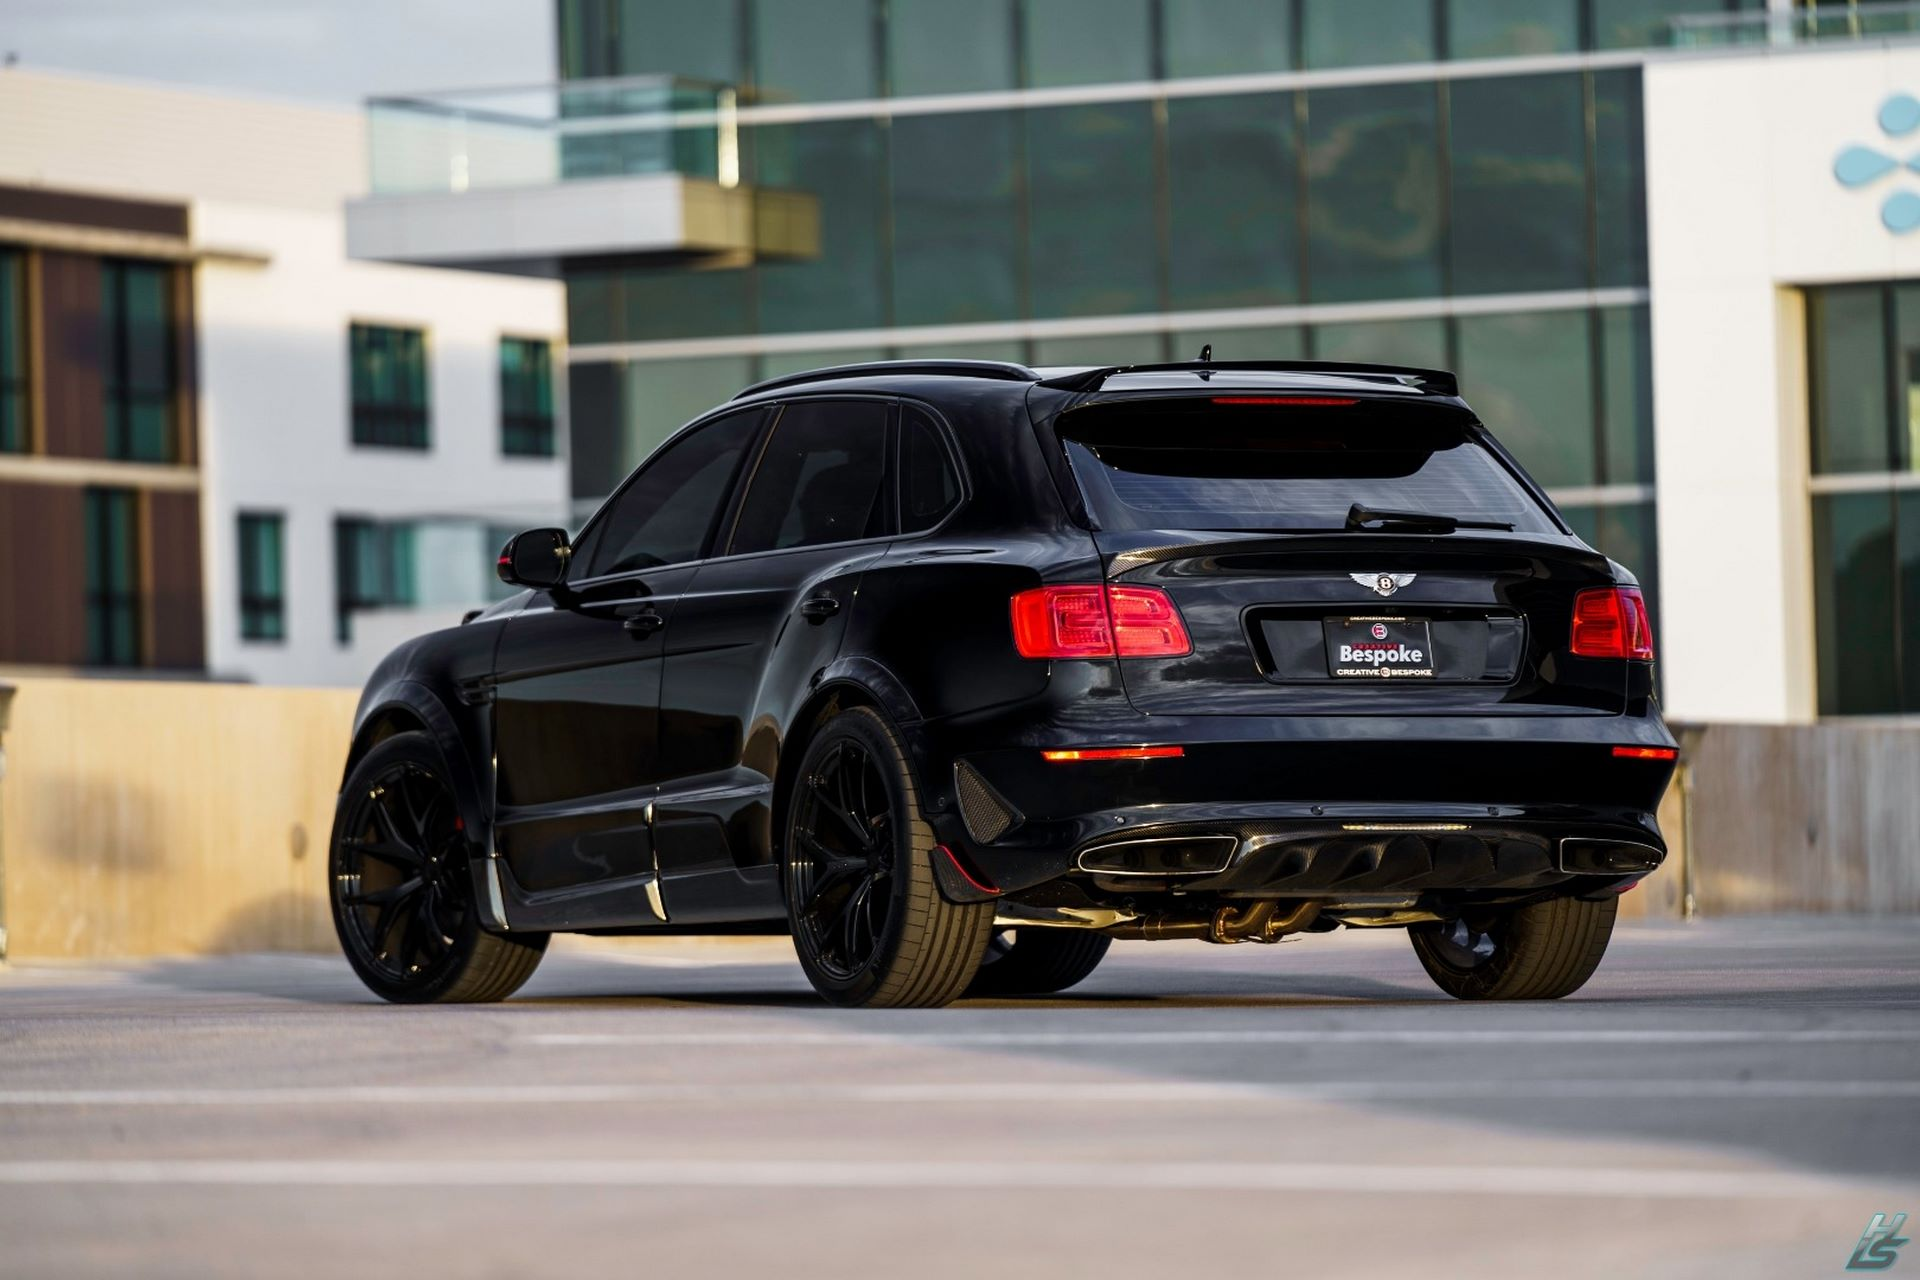 Bentley-Bentayga-by-Creative-Bespoke-19